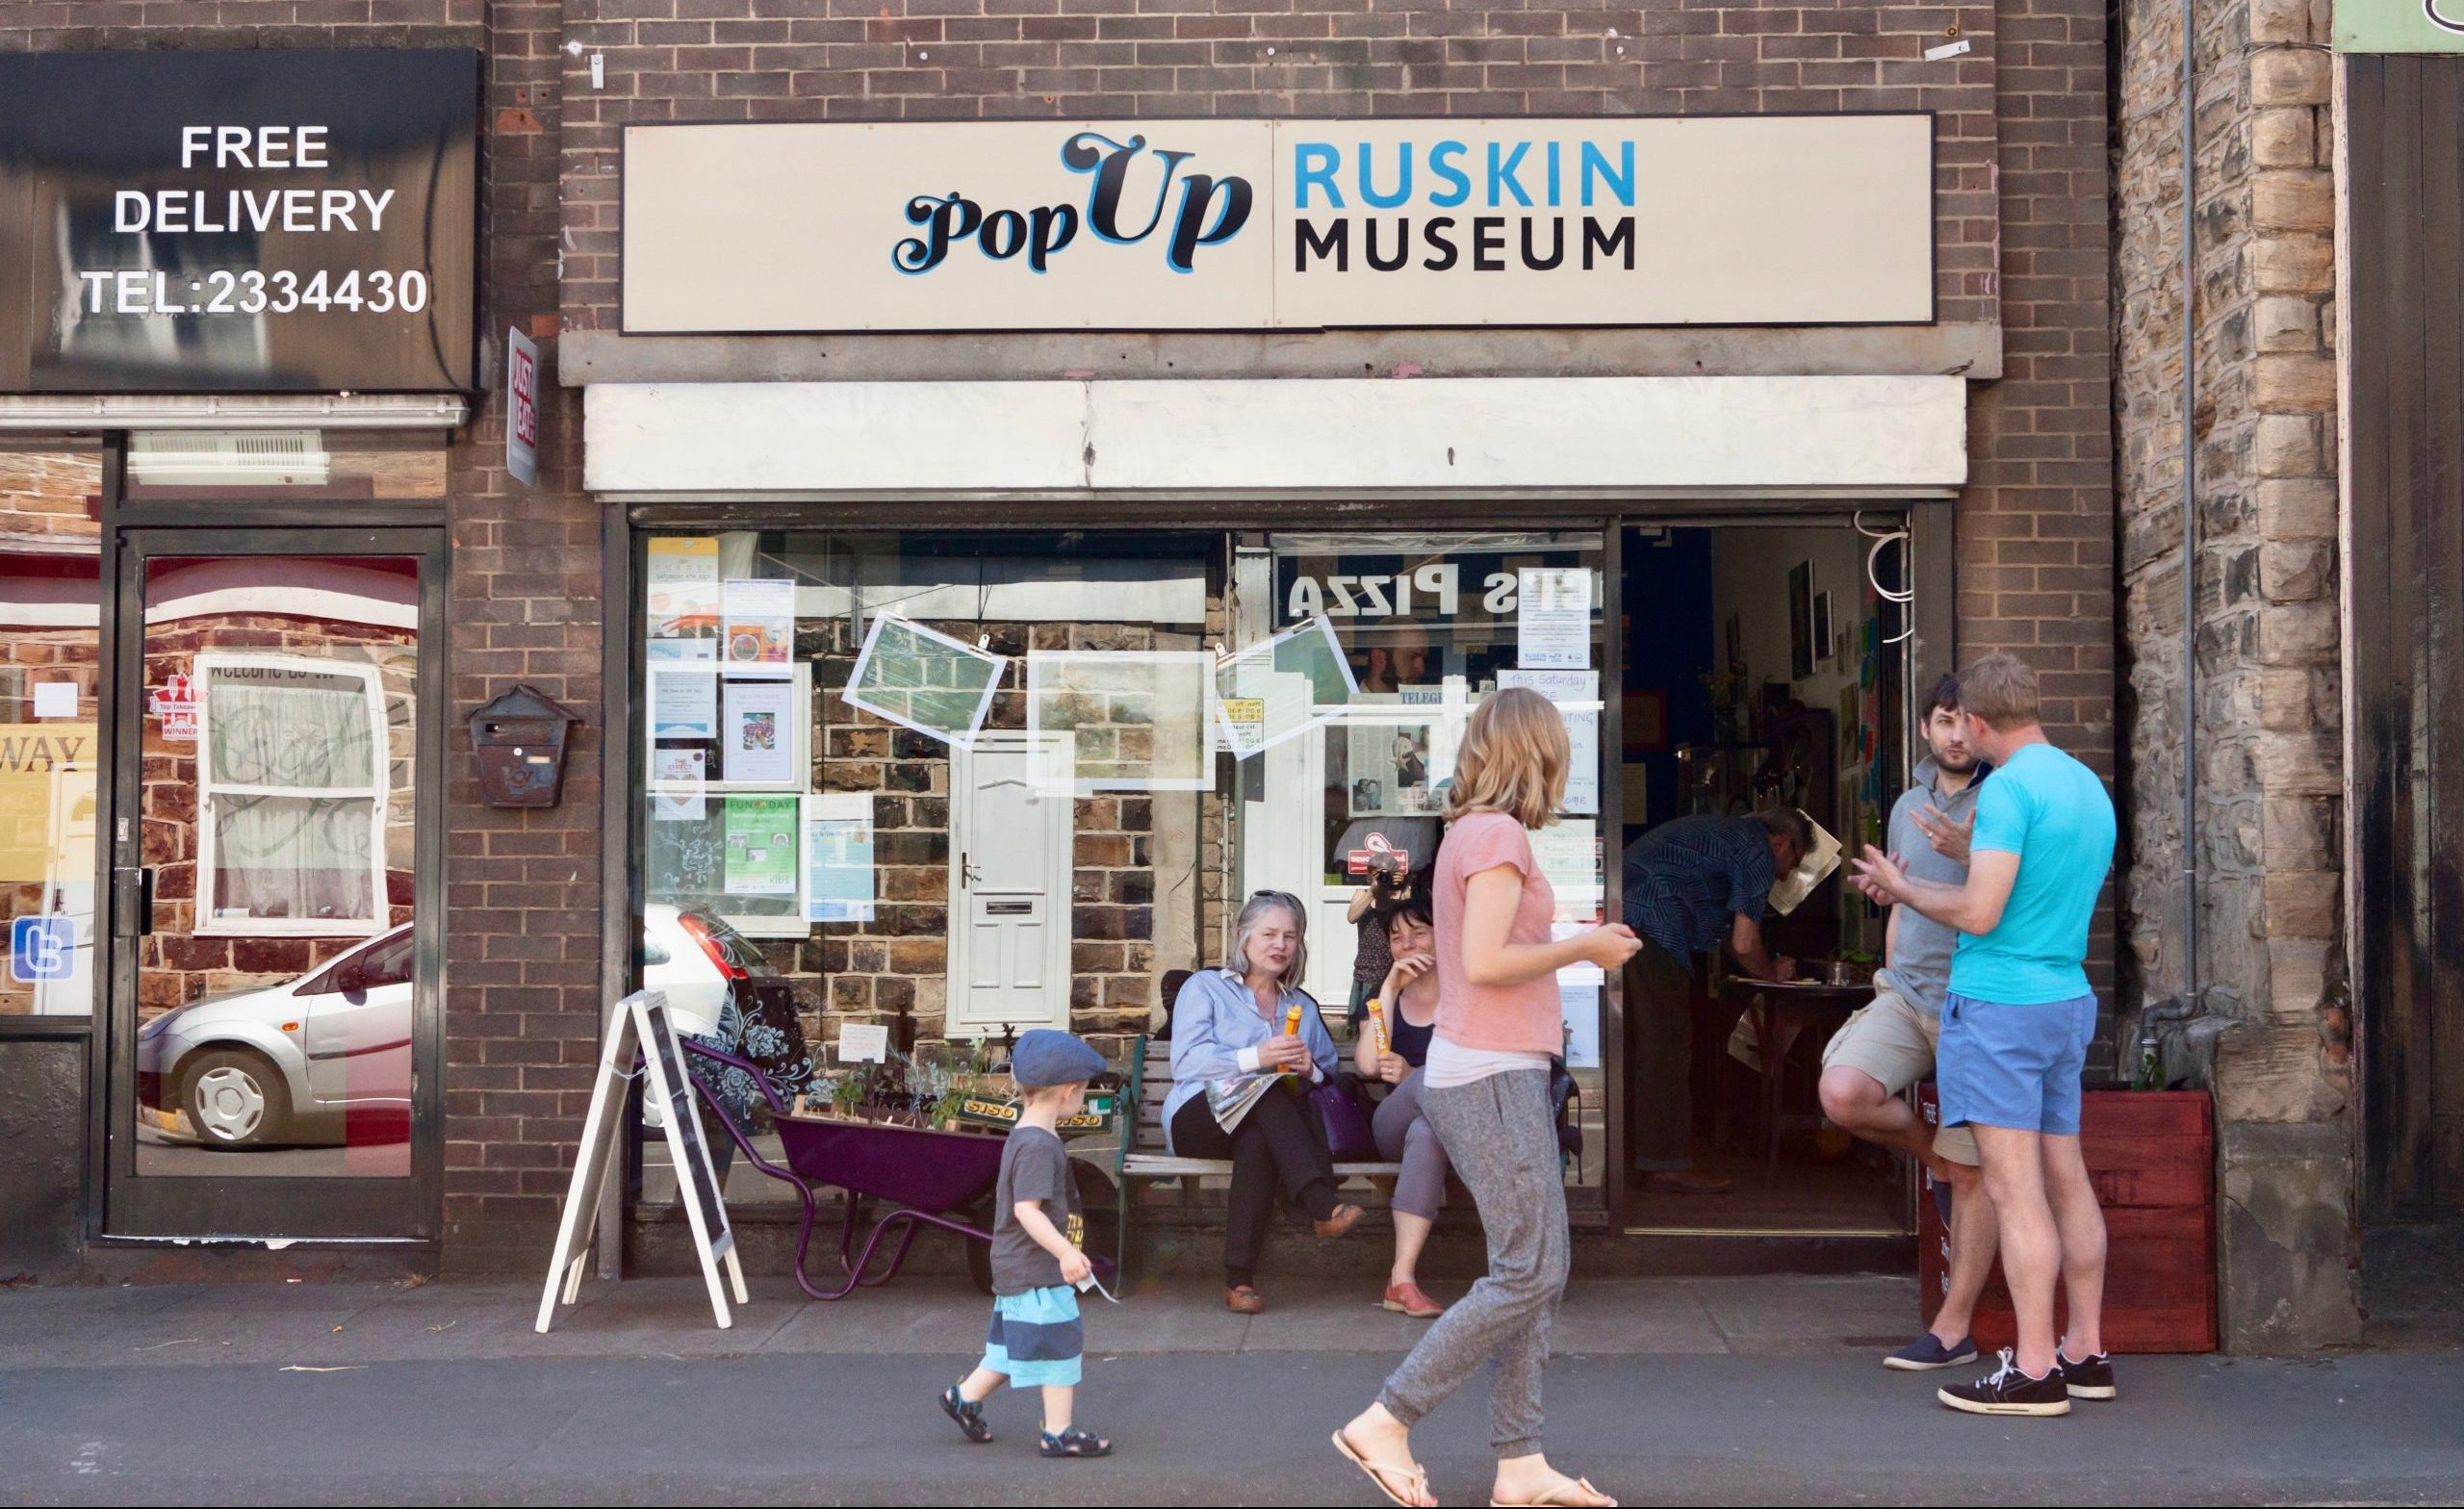 The pop-up Ruskin Museum in Sheffield